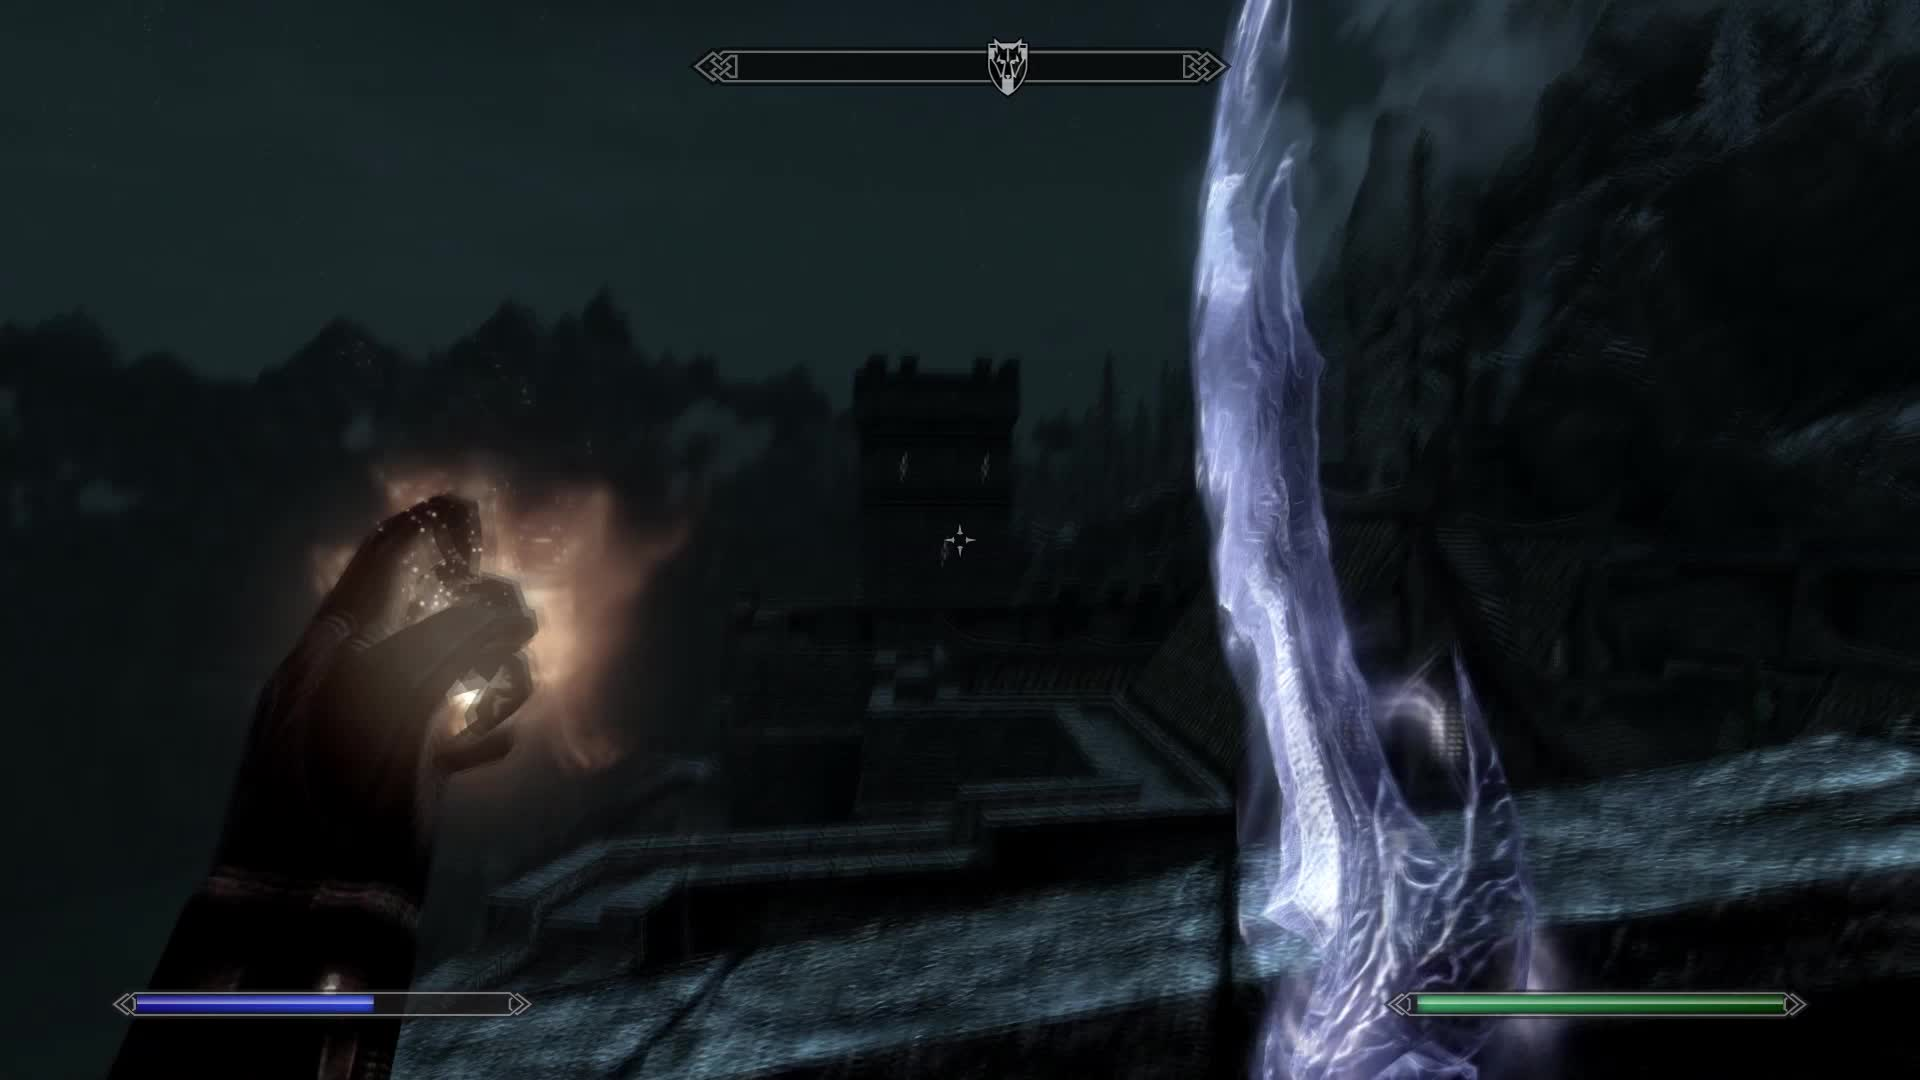 ImagesOfThe2010s, skyrim, It's 2017 and I'm still doing this. GIFs